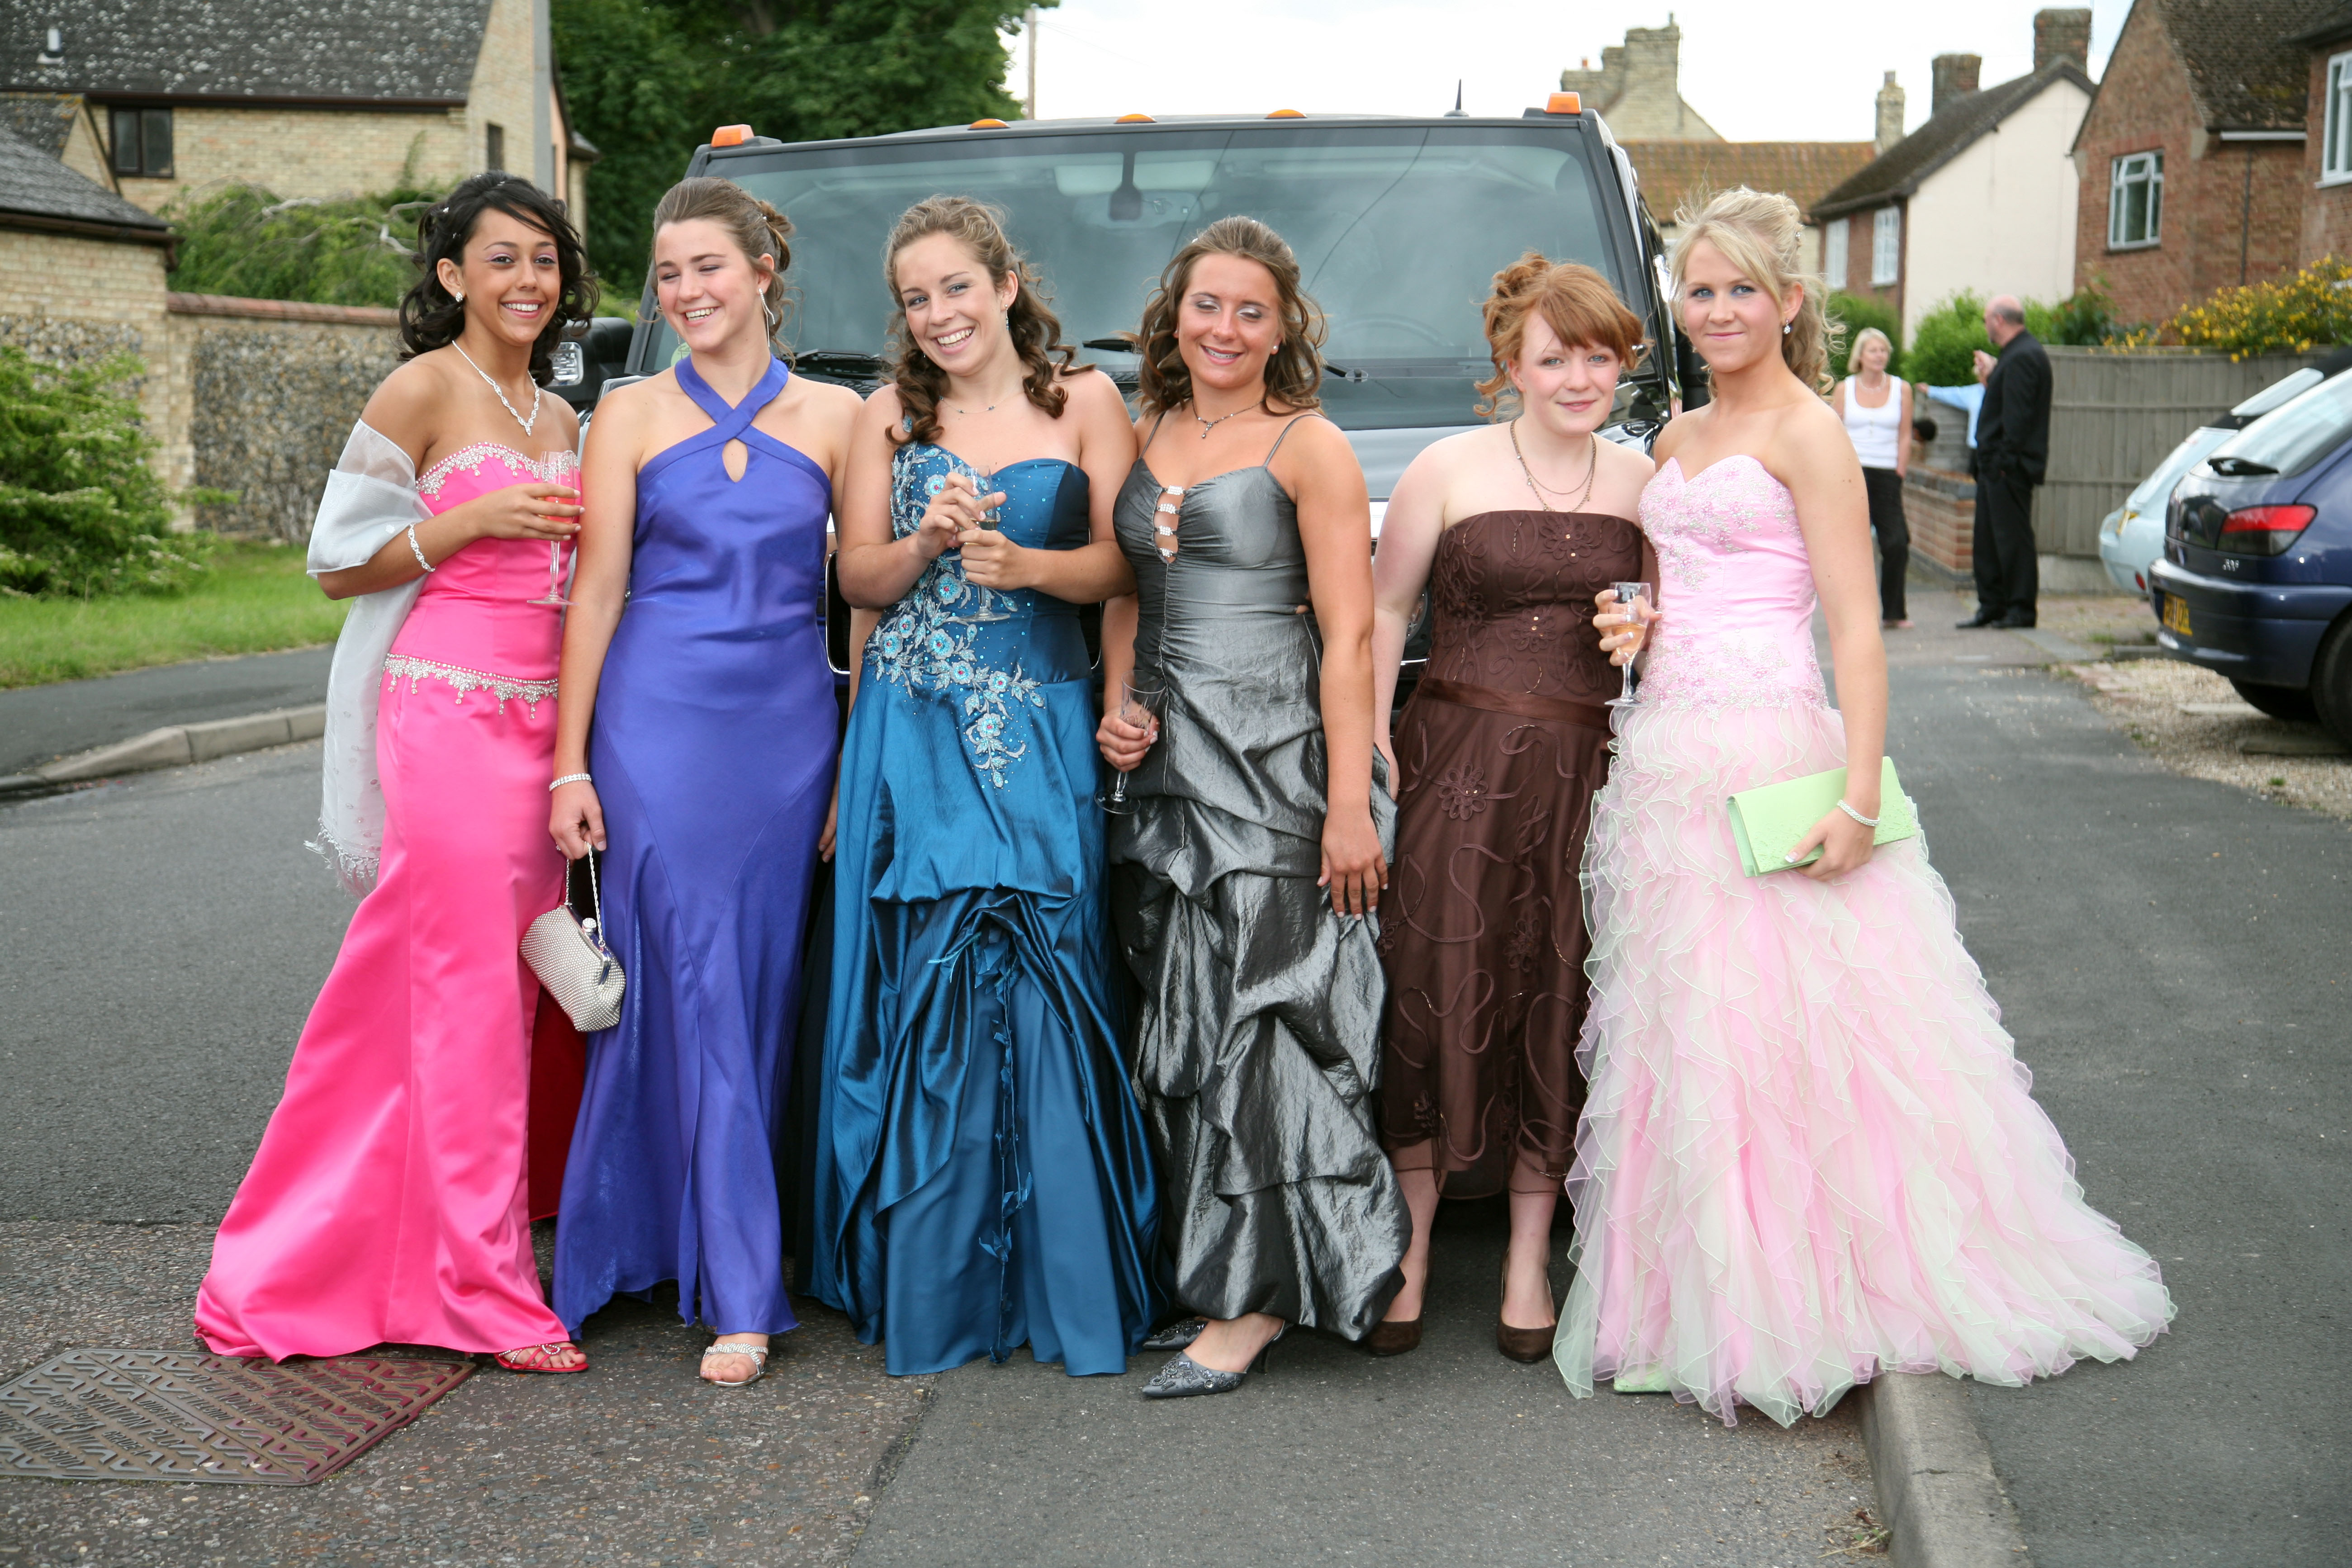 How British Schools Fell for American-Style Proms - VICE